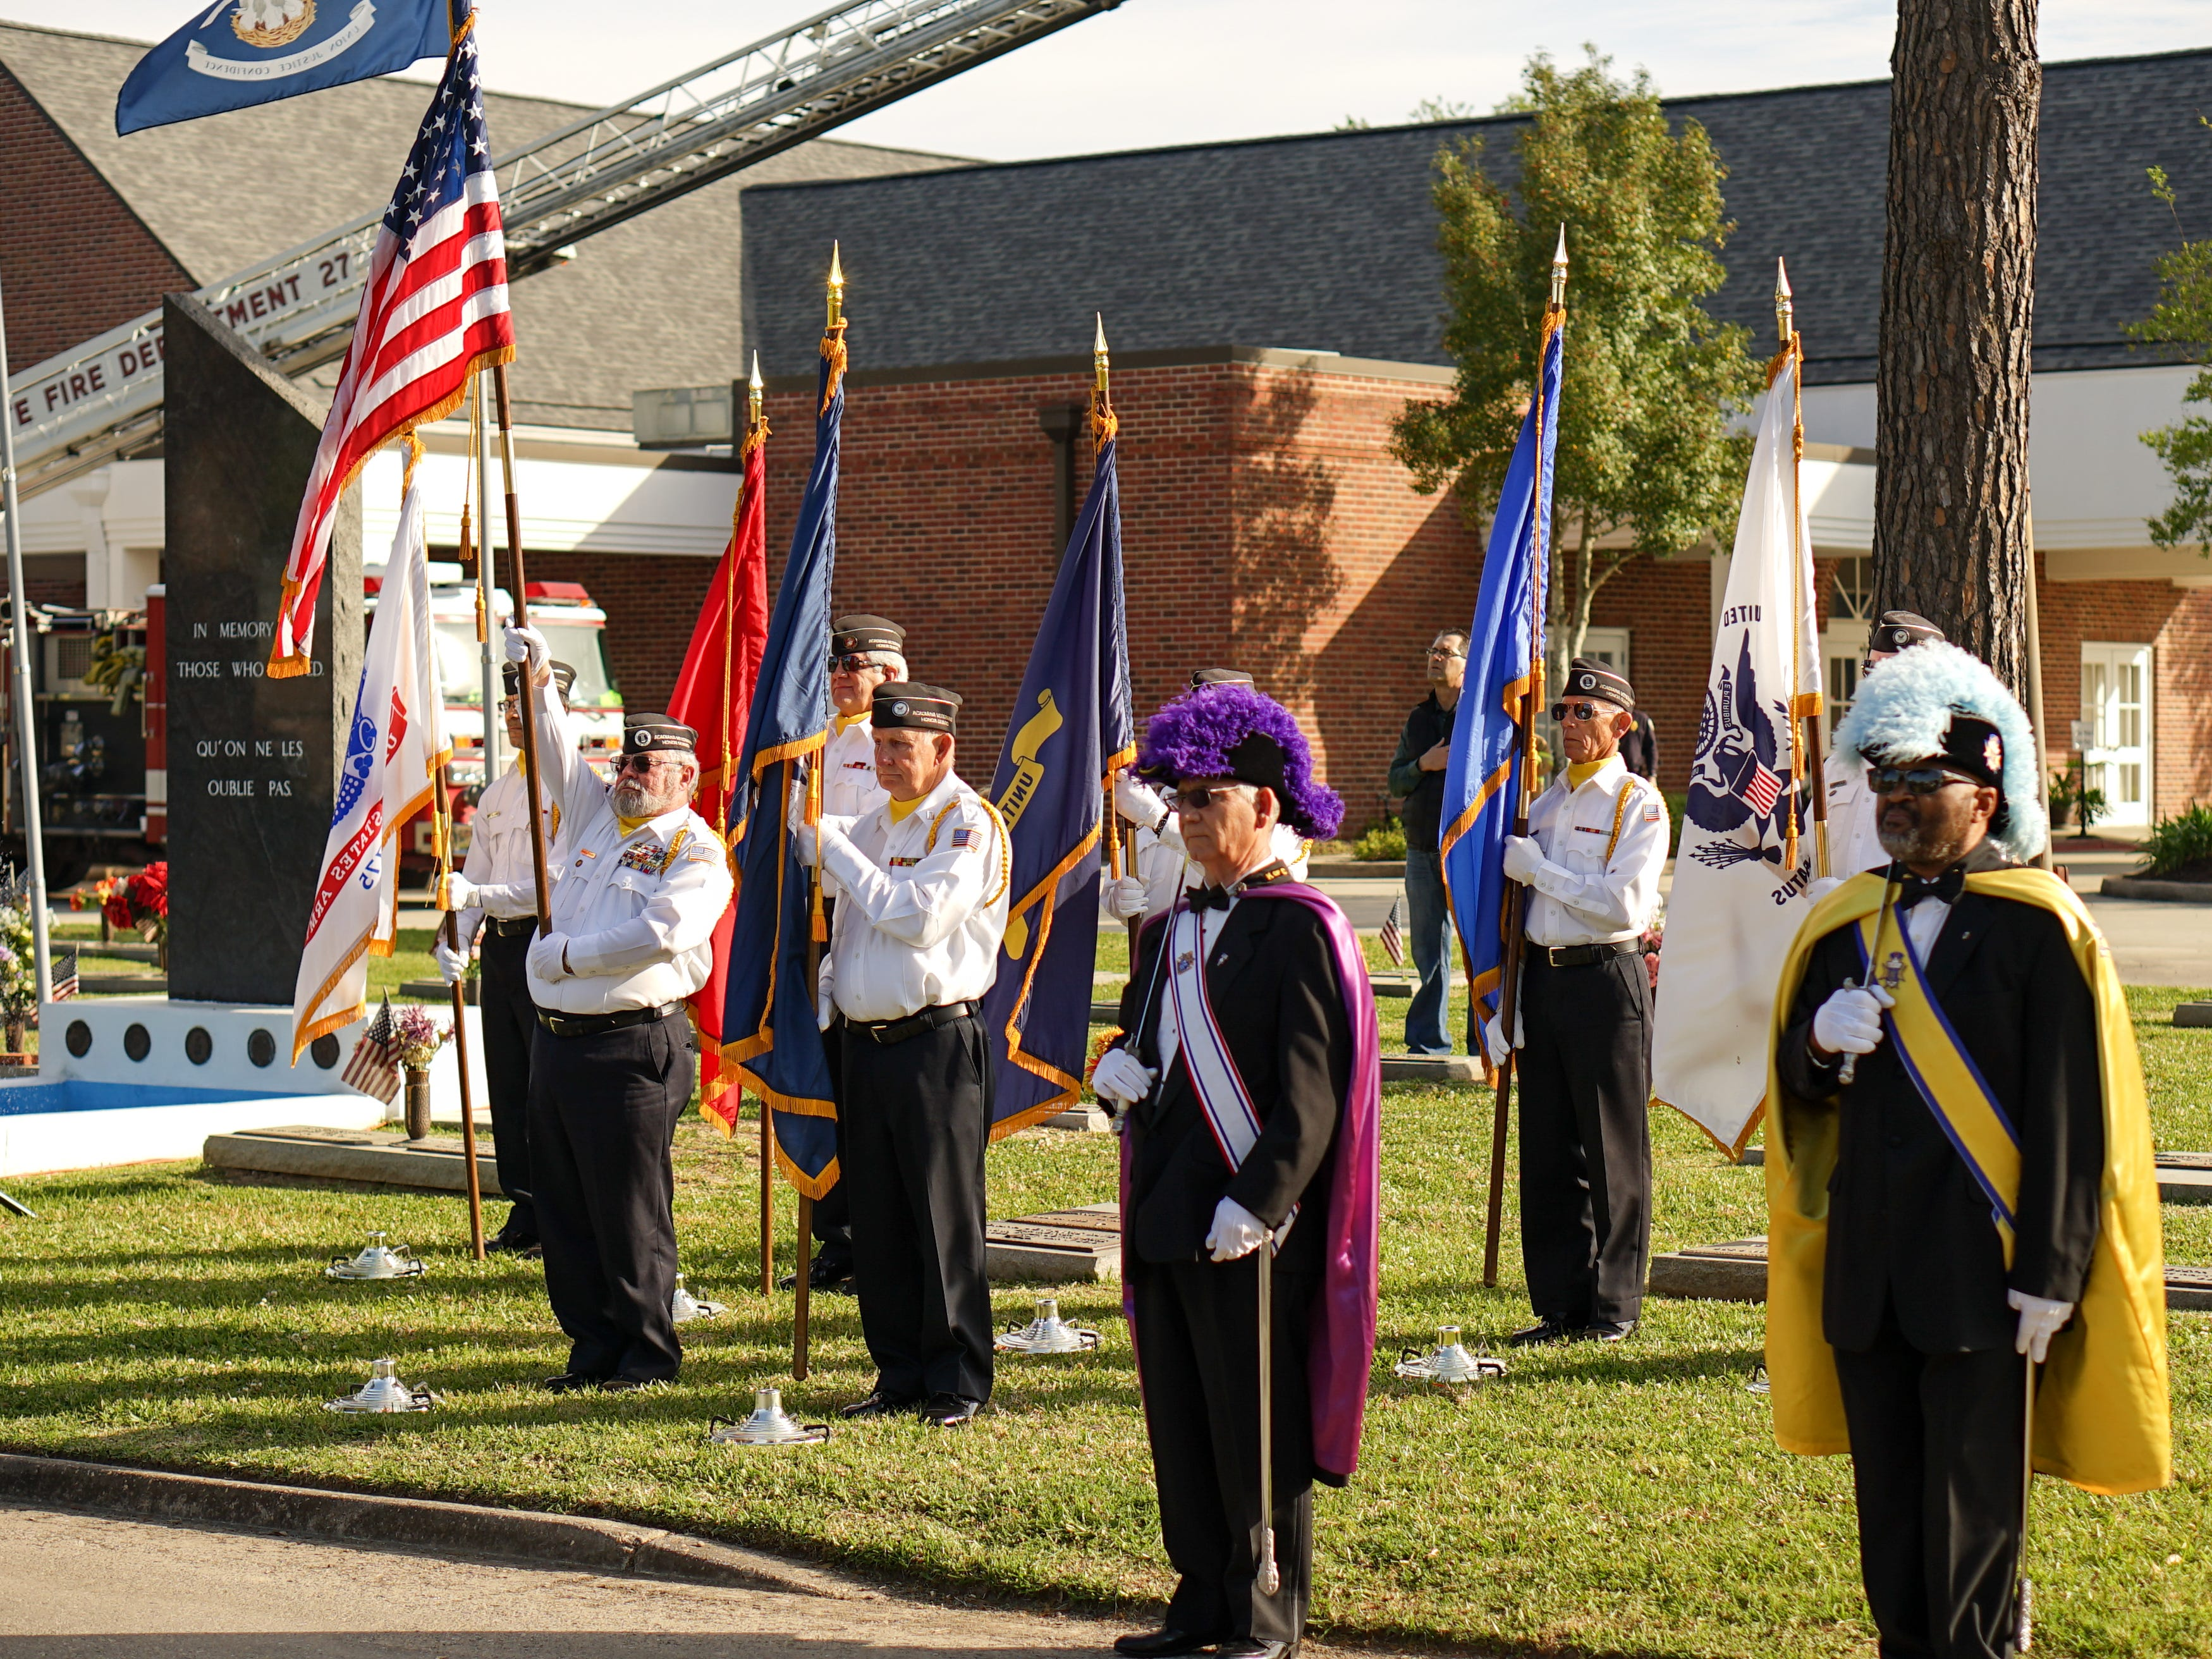 """Members of the Acadiana Veterans Honor Guard and the Knights of Columbus  stand before the memorial during the """"Welcome Home Vietnam Veterans"""" event at Fountain Memorial Funeral Home and Cemetery in Lafayette on Friday, March 29, 2019."""